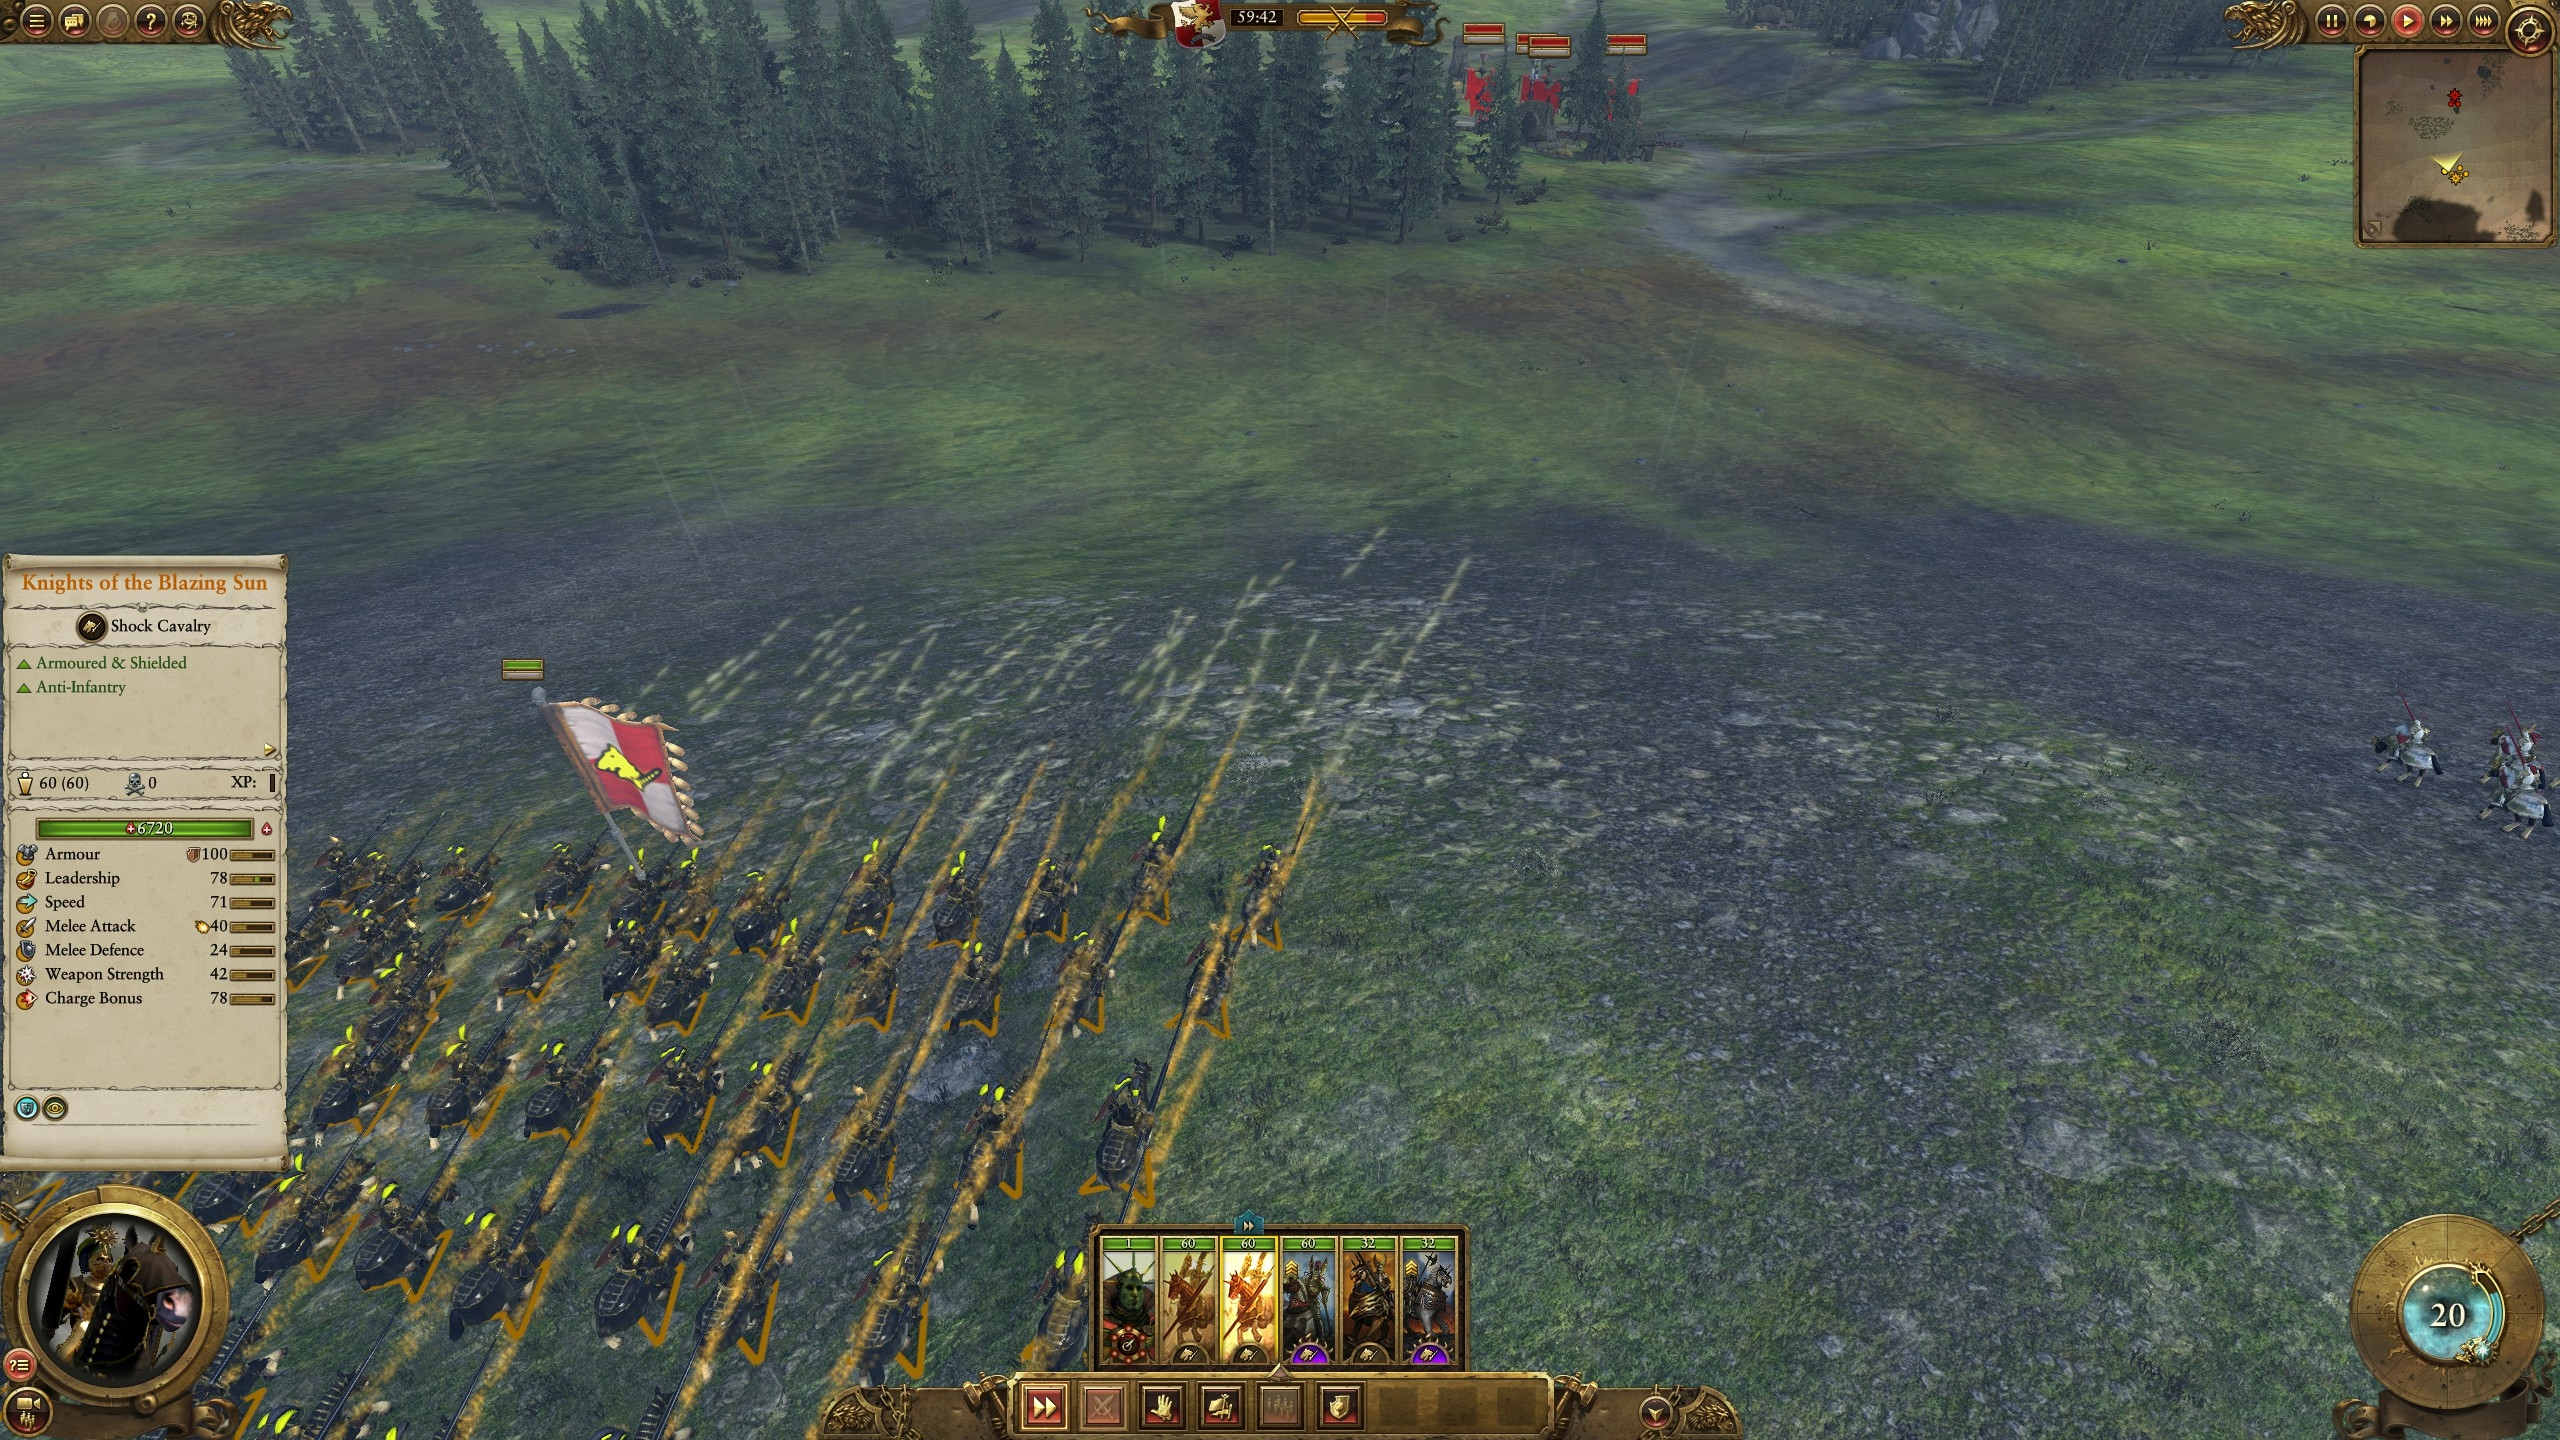 Weird glitch with effects — Total War Forums